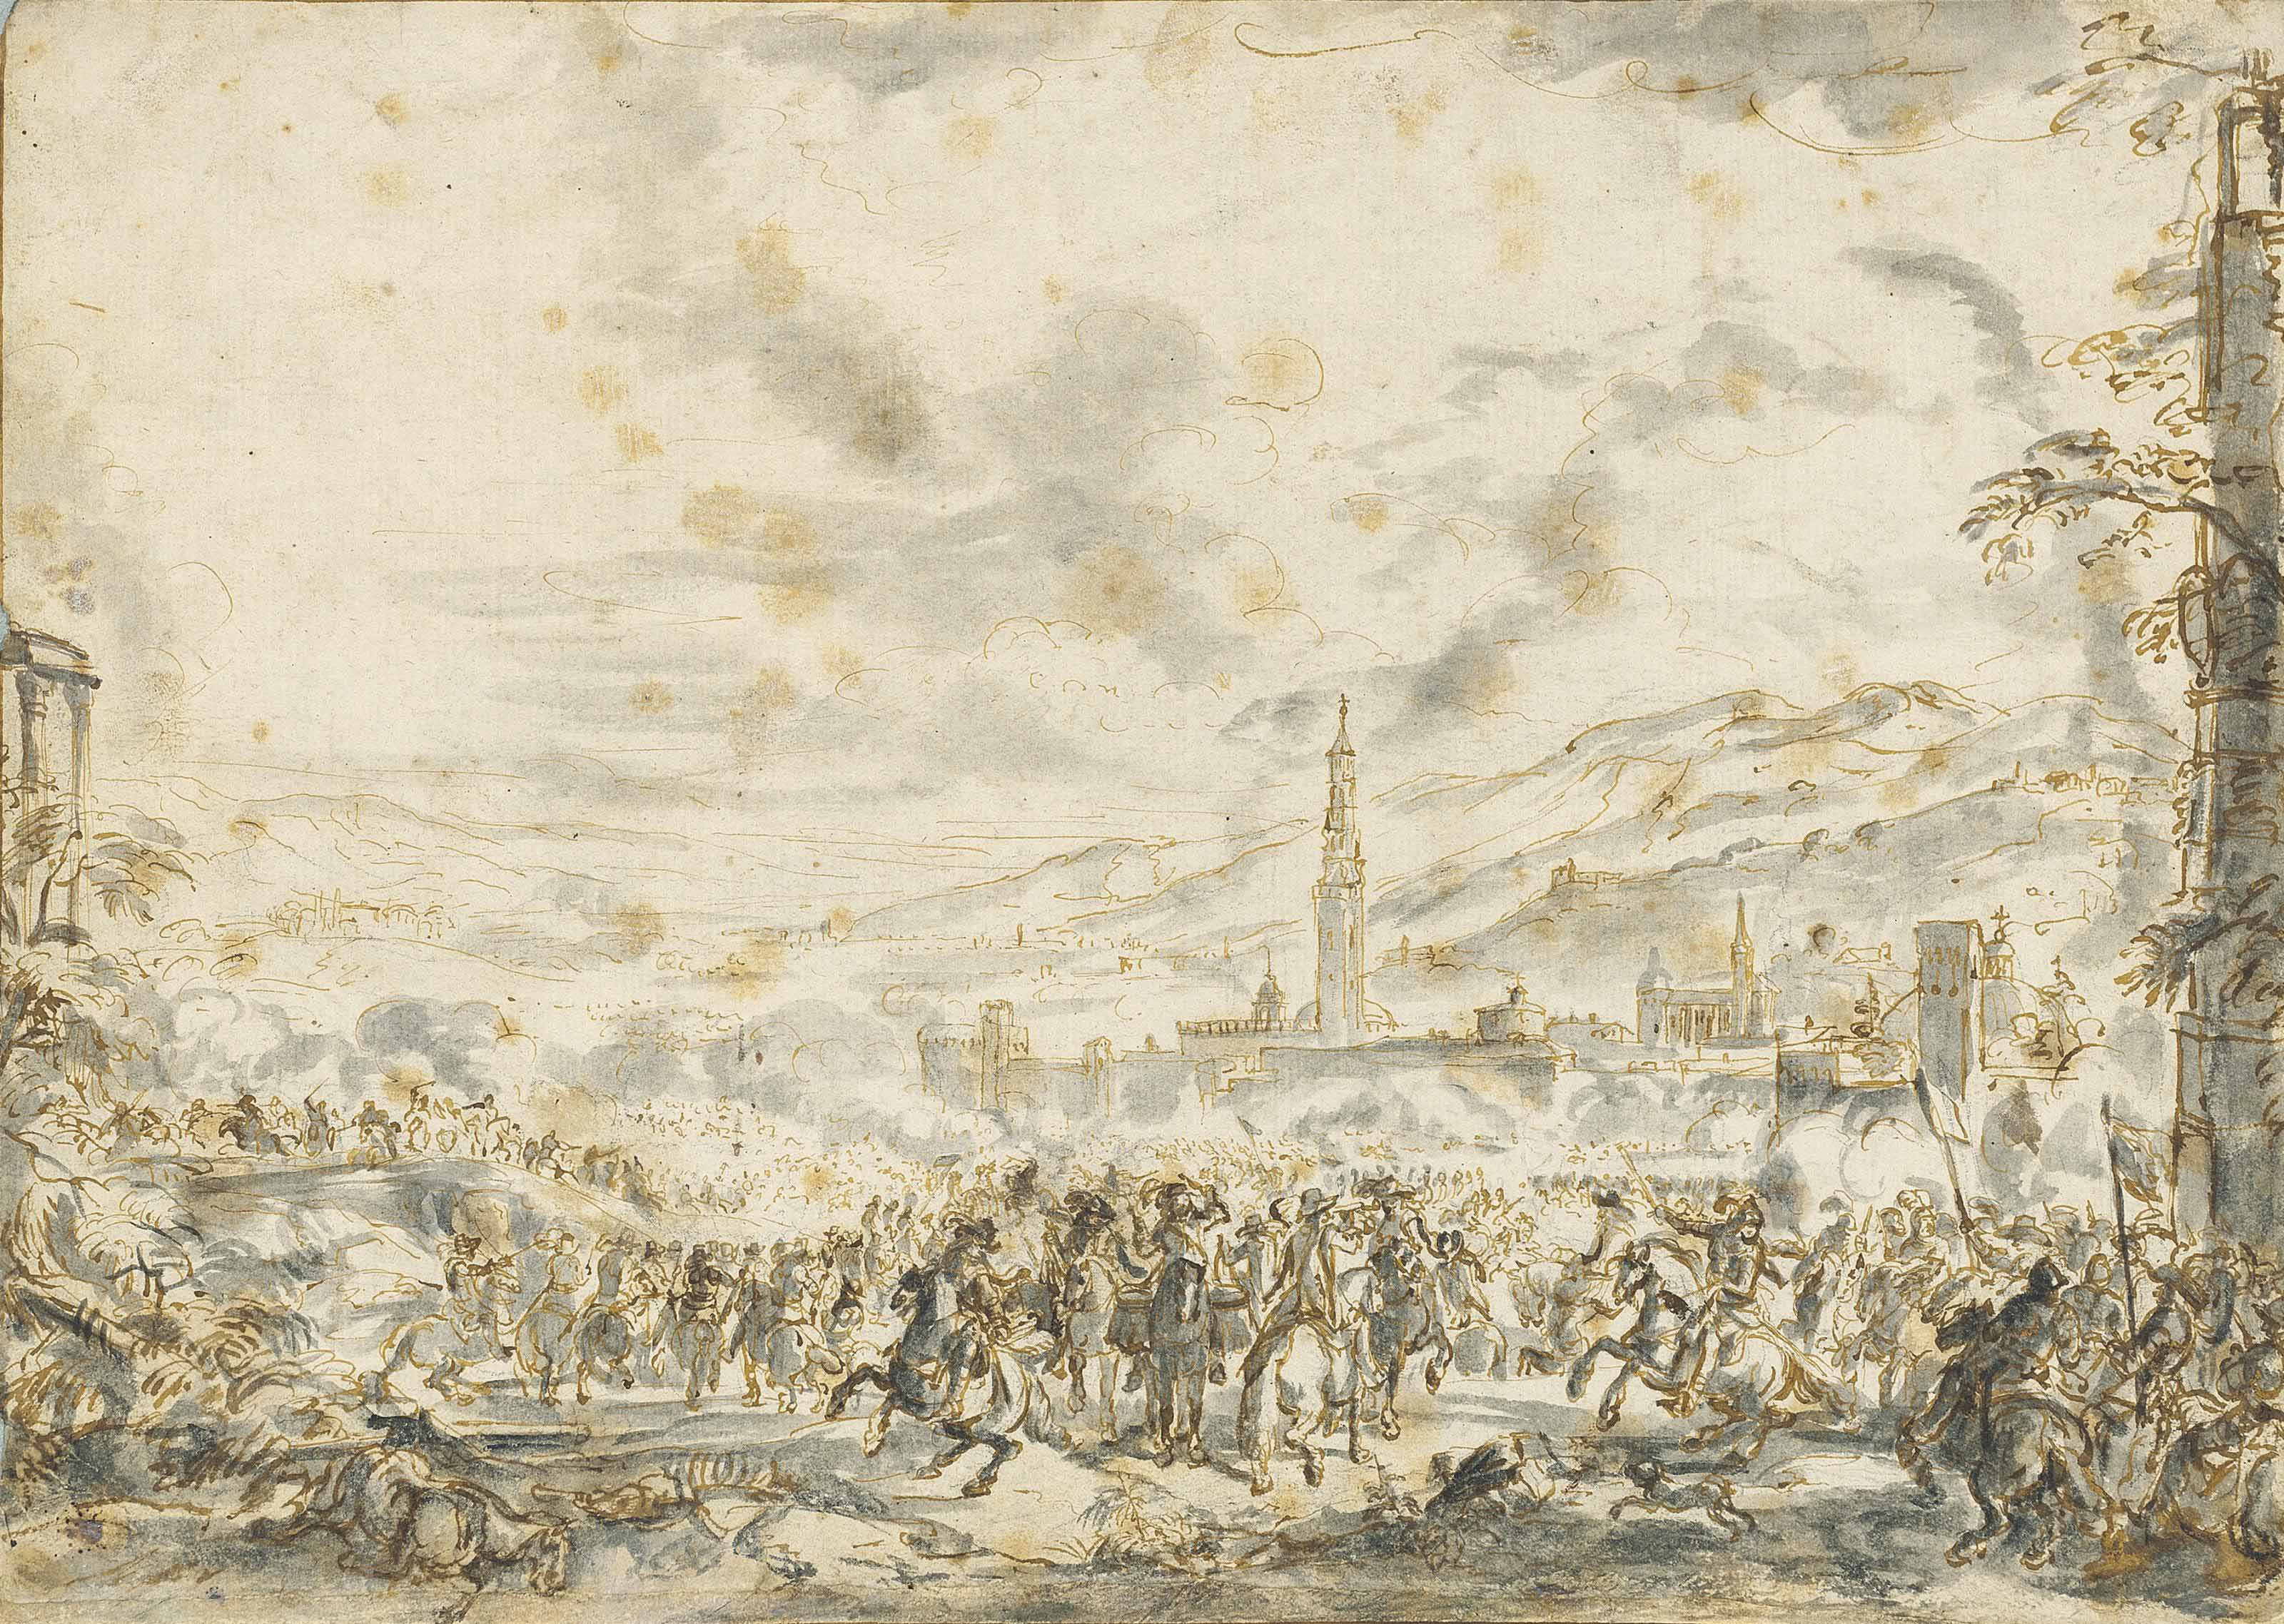 A battlefield before a town, mountains in the background